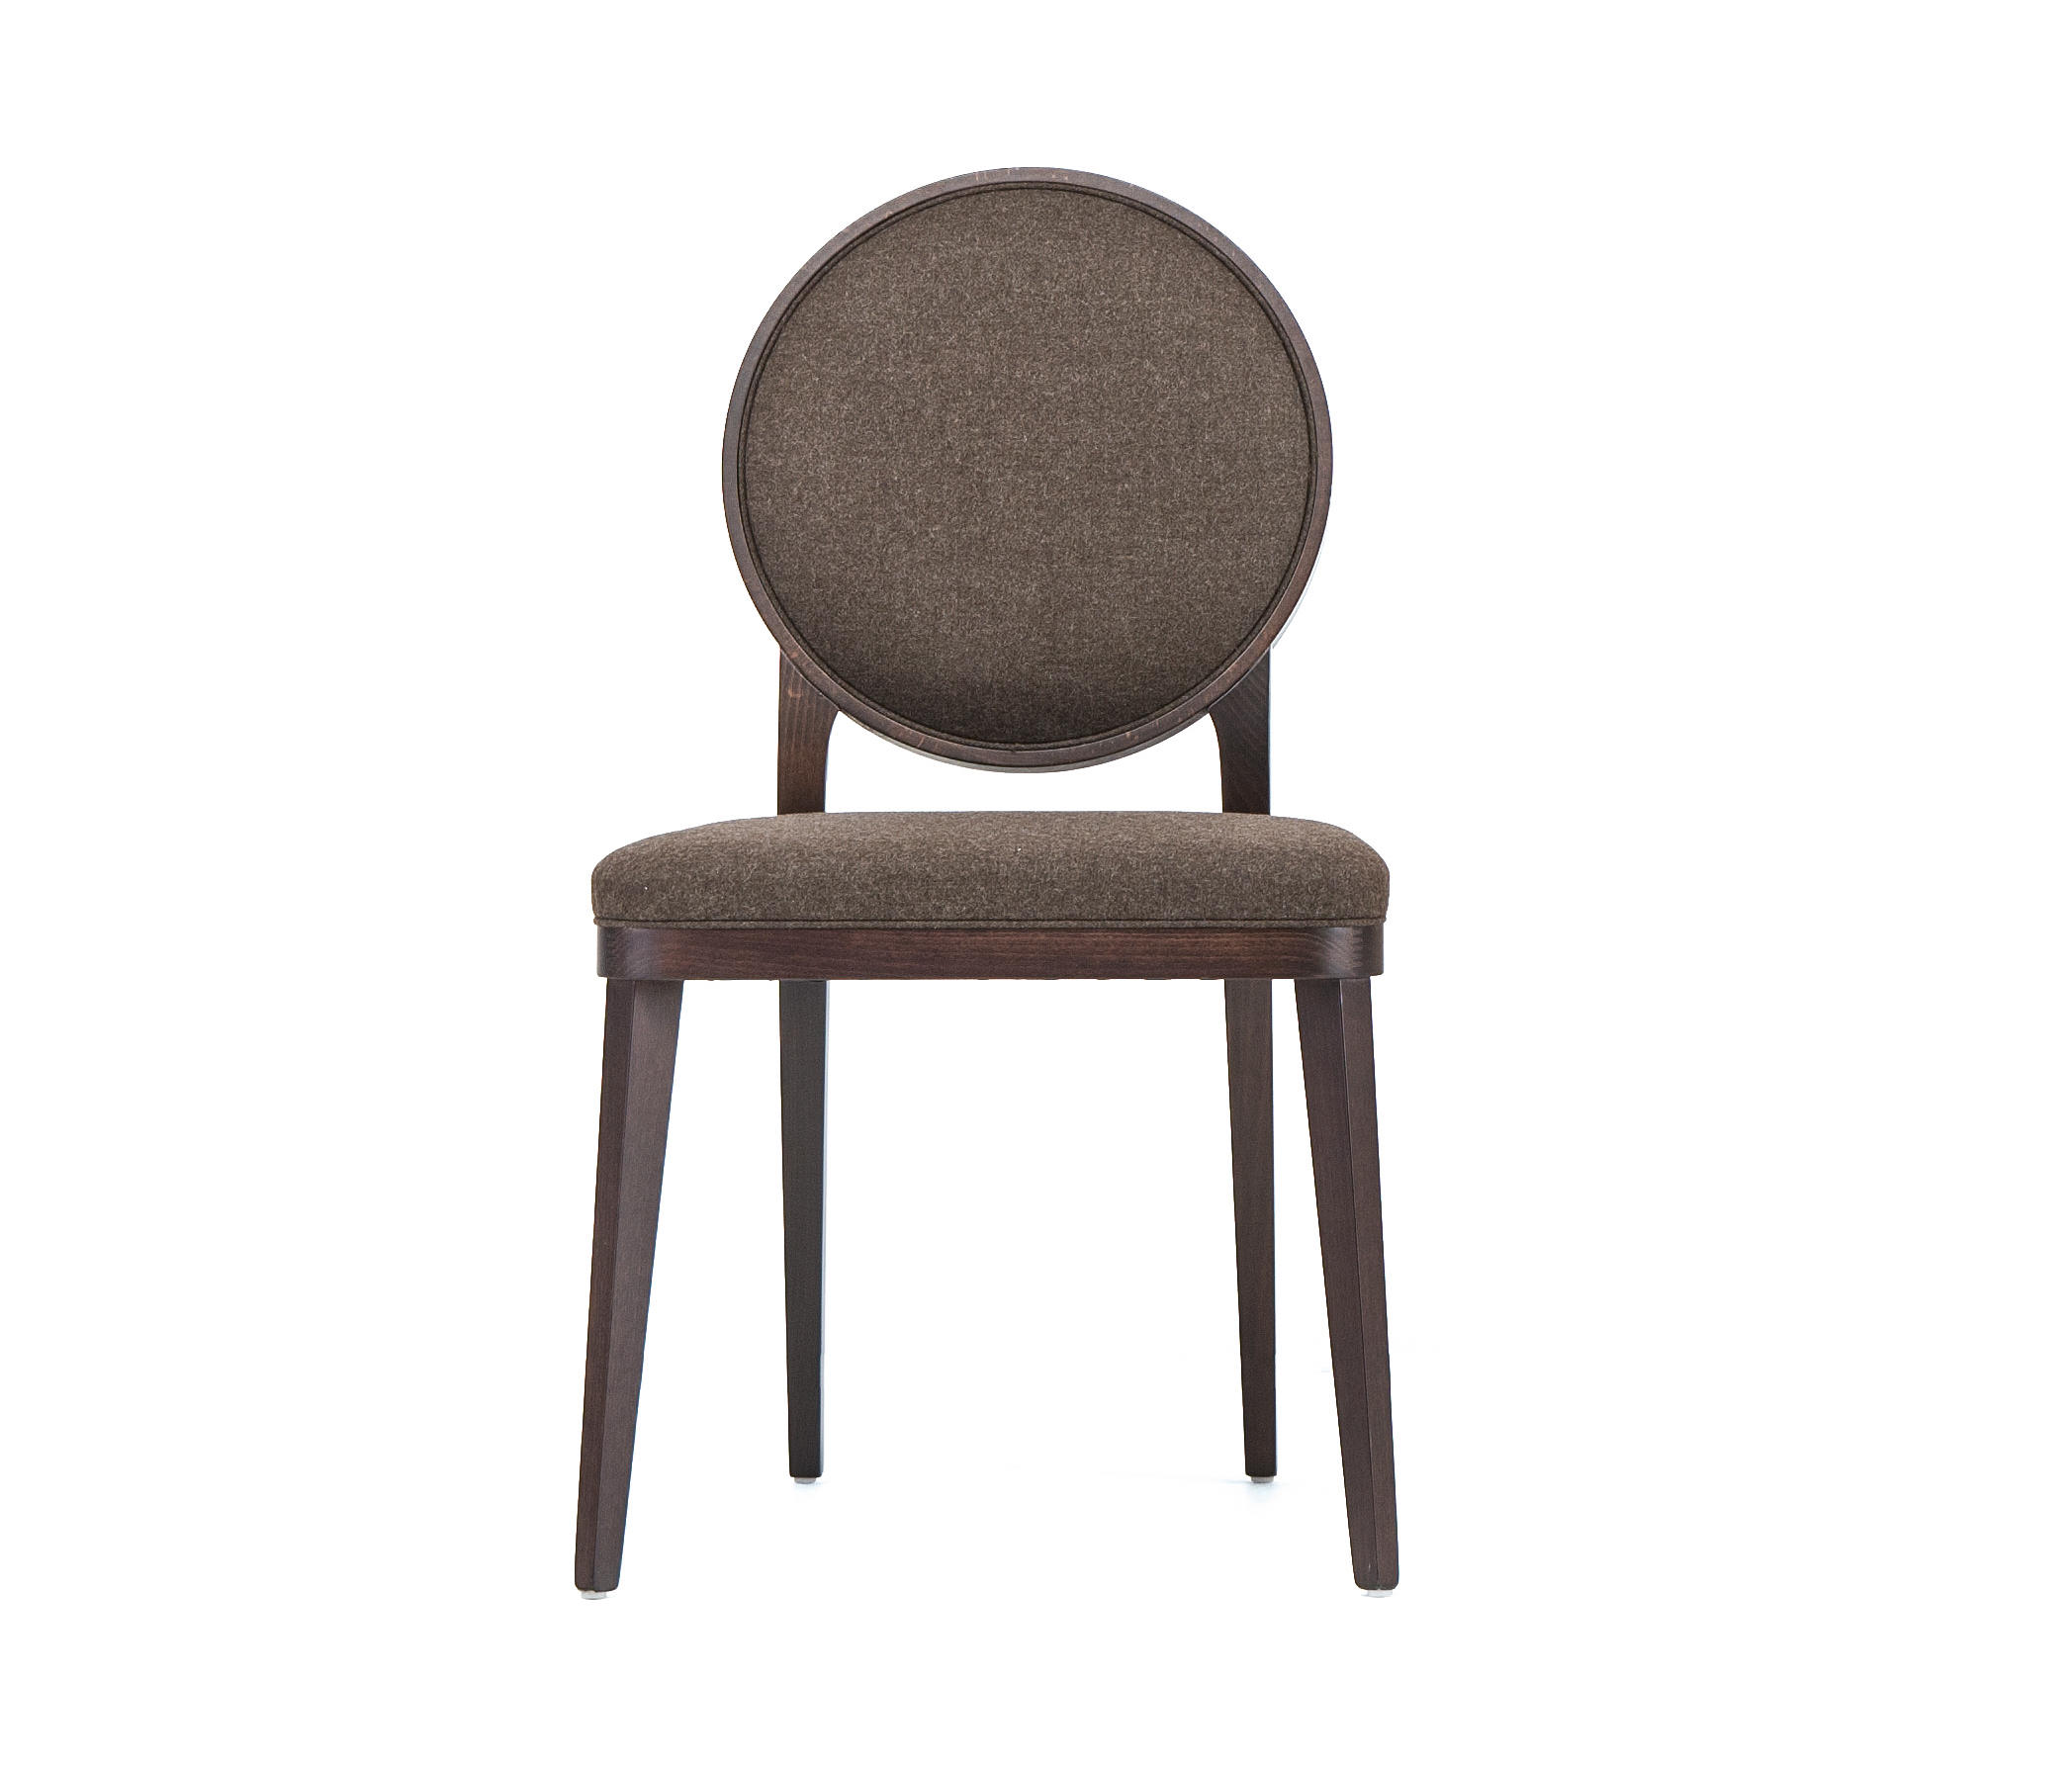 Chaise Brasserie Plaza Chaise Chaises De Bross Architonic